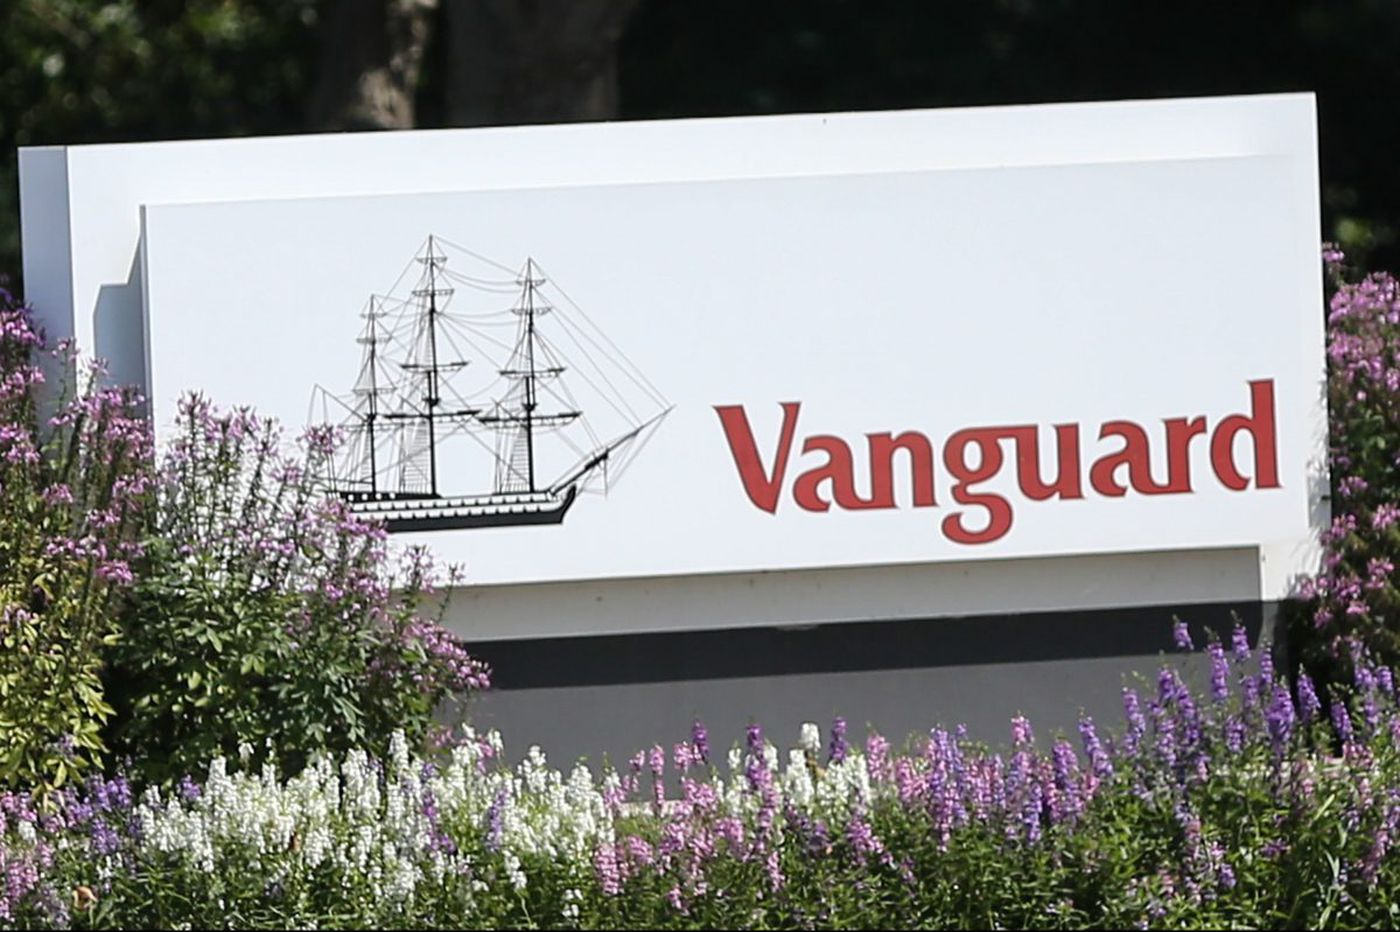 What to expect from mutual funds giant Vanguard in 2019